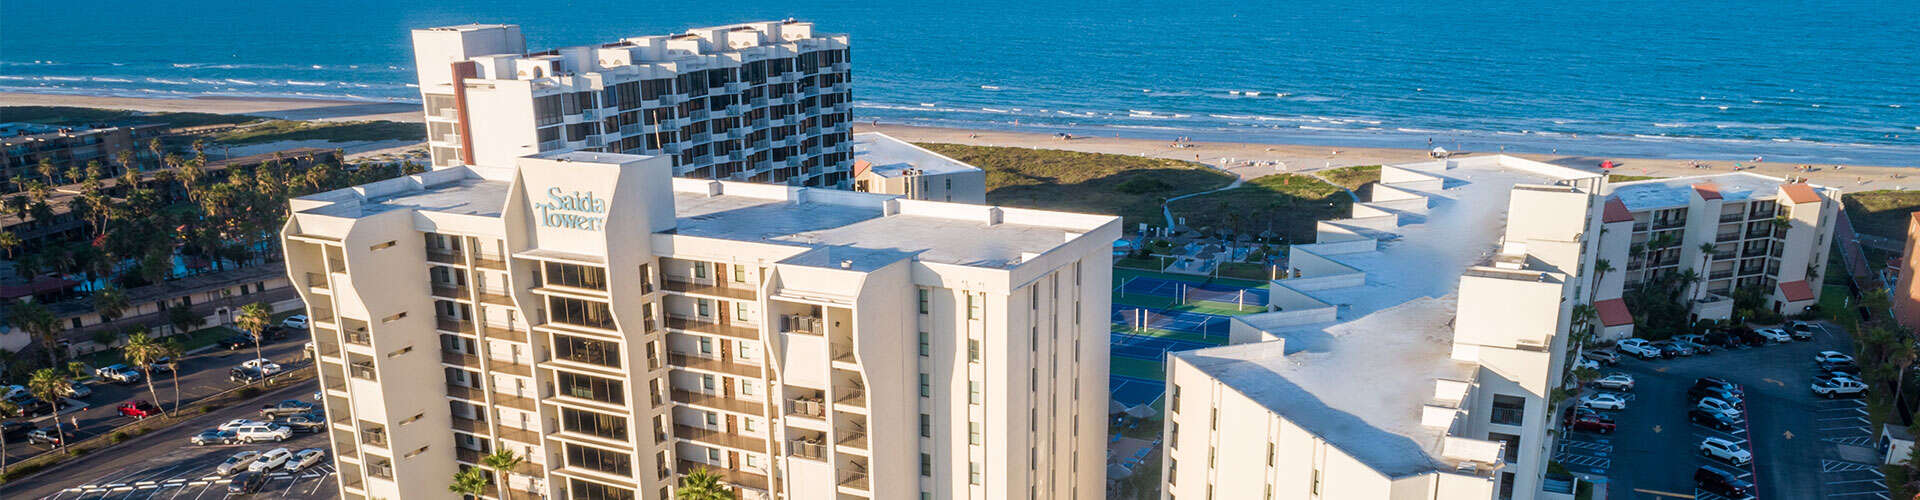 South Padre Island Rentals Texas Gulf Coast Vacations